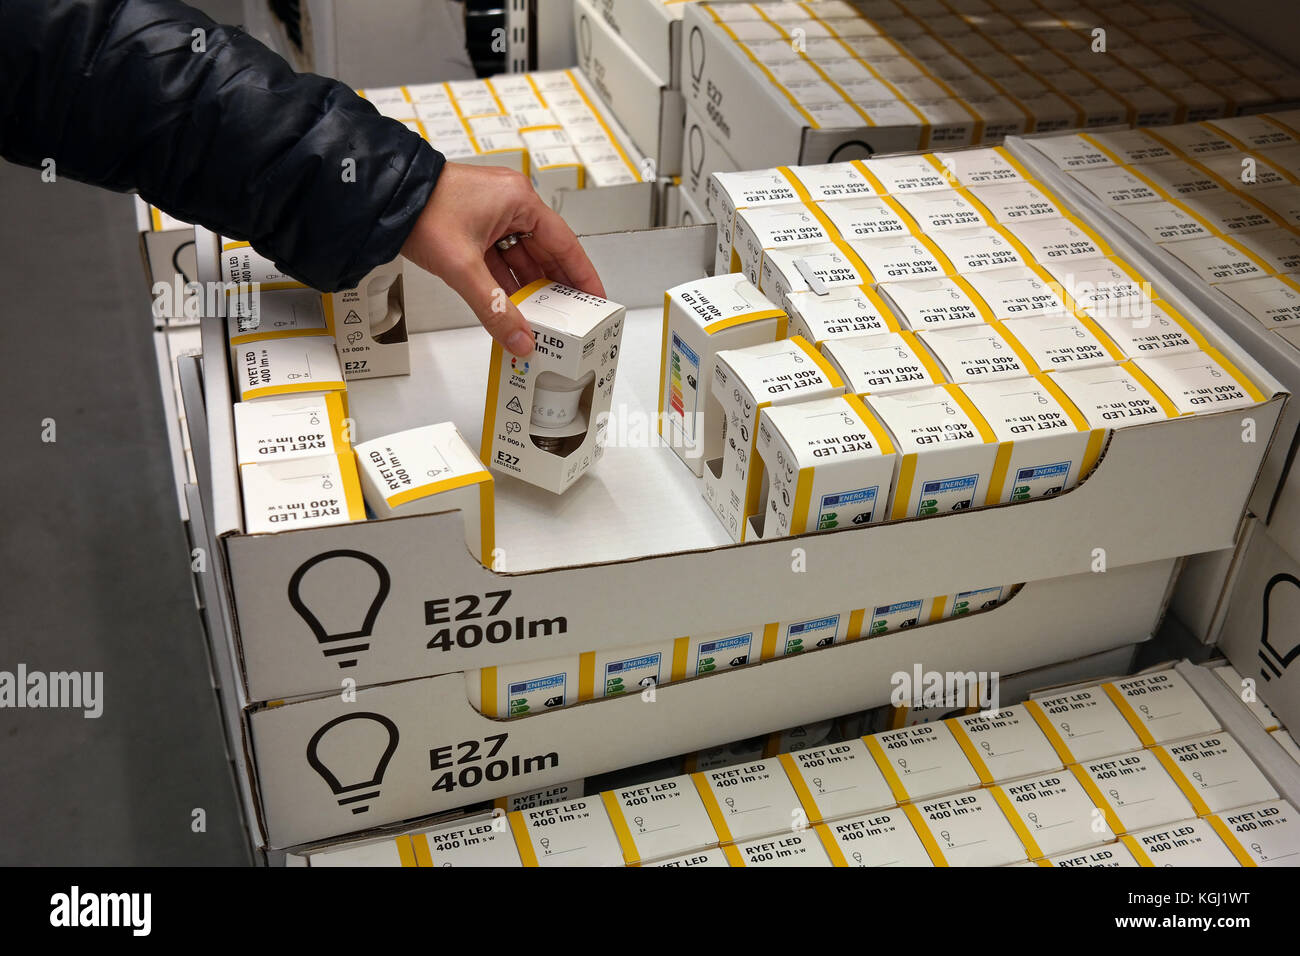 LED lamps in a Ikea store - Stock Image